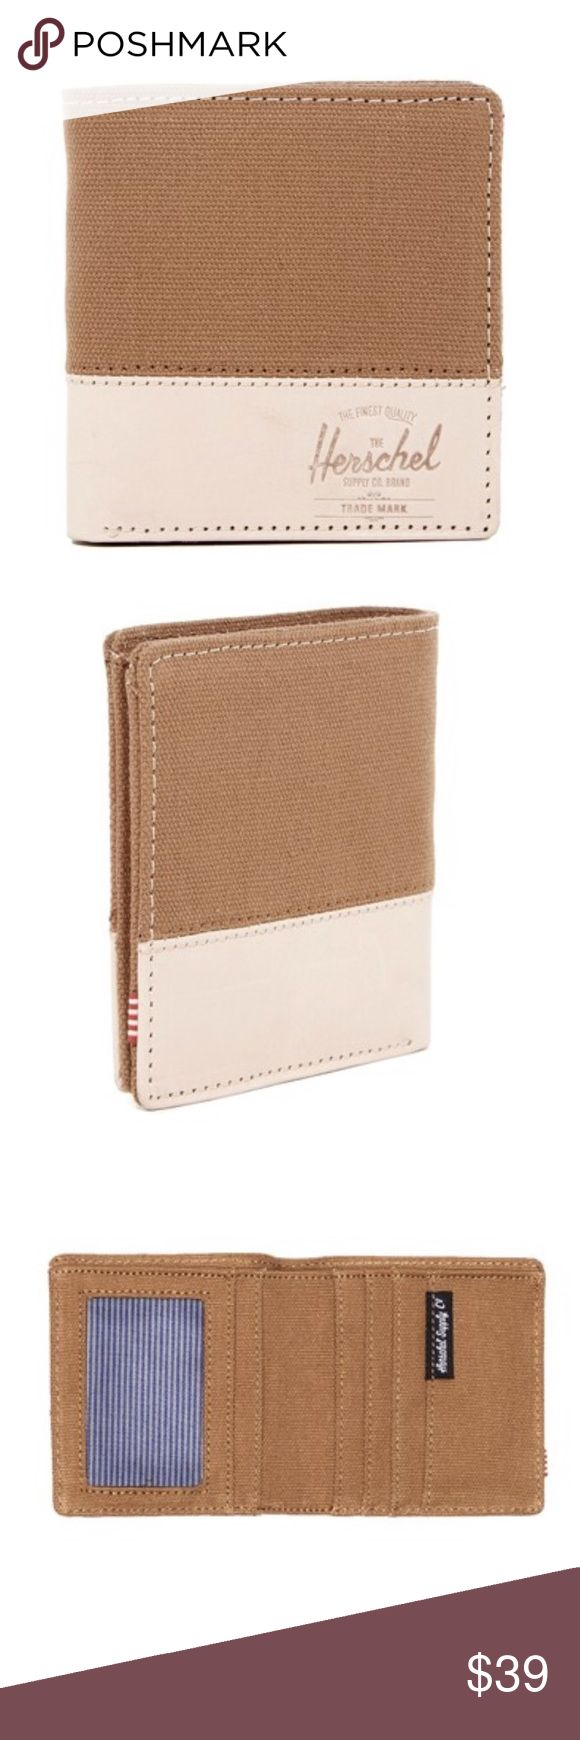 """Herschel Supply Co. Kenny Canvas Leather Wallet Details - Bi-fold - Leather and canvas construction - Interior features 5 card slots, 1 bill slot, and 1 ID window - Approx. 4"""" H x 4"""" W x 0.5"""" D - Imported Materials Leather and textile exterior, textile lining Herschel Supply Company Bags Wallets"""